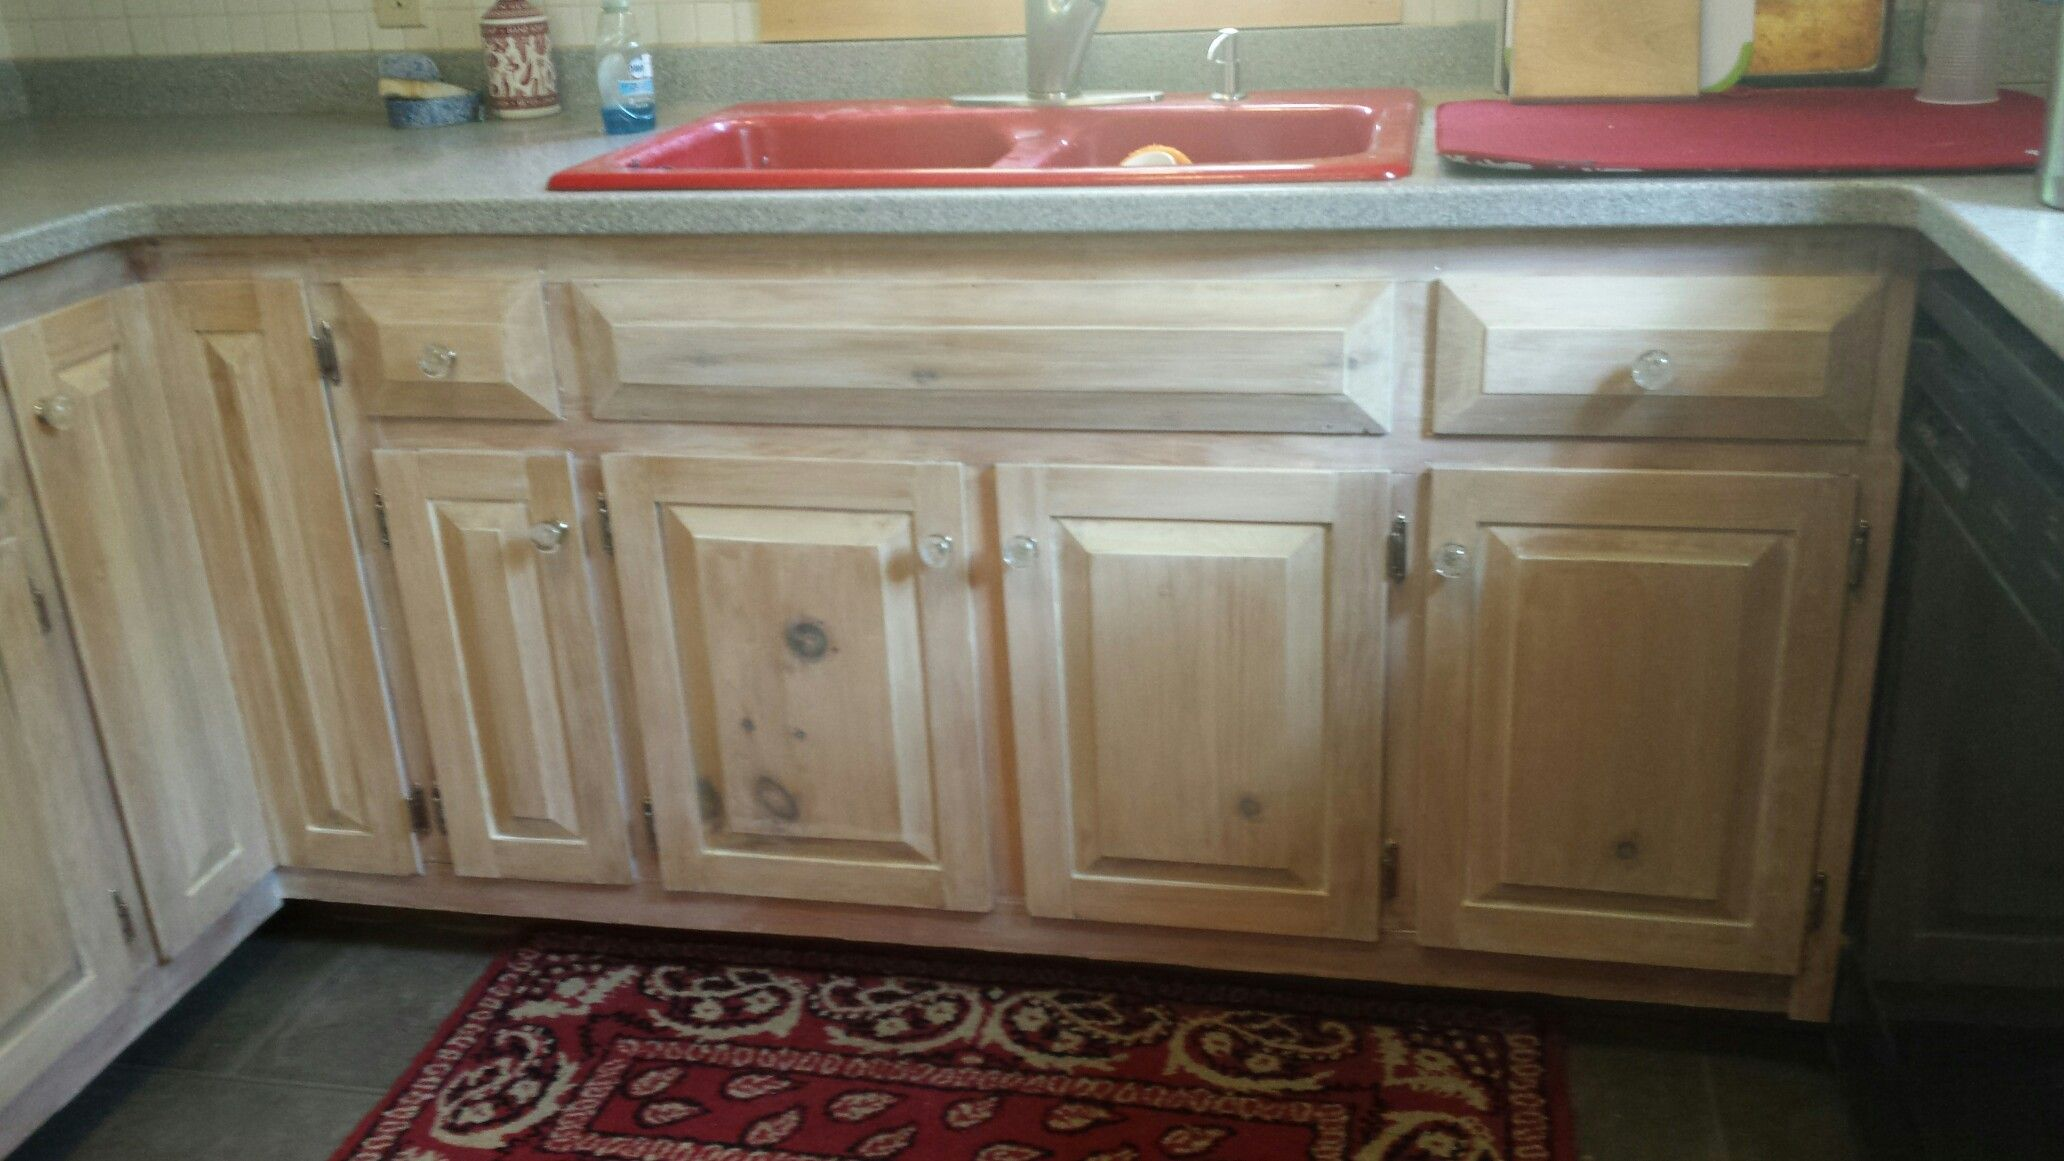 Pickled Kitchen Cabinets 40 Year Old Pine Stripped And Whitewashed Give This A Fresh Clean Upgrade